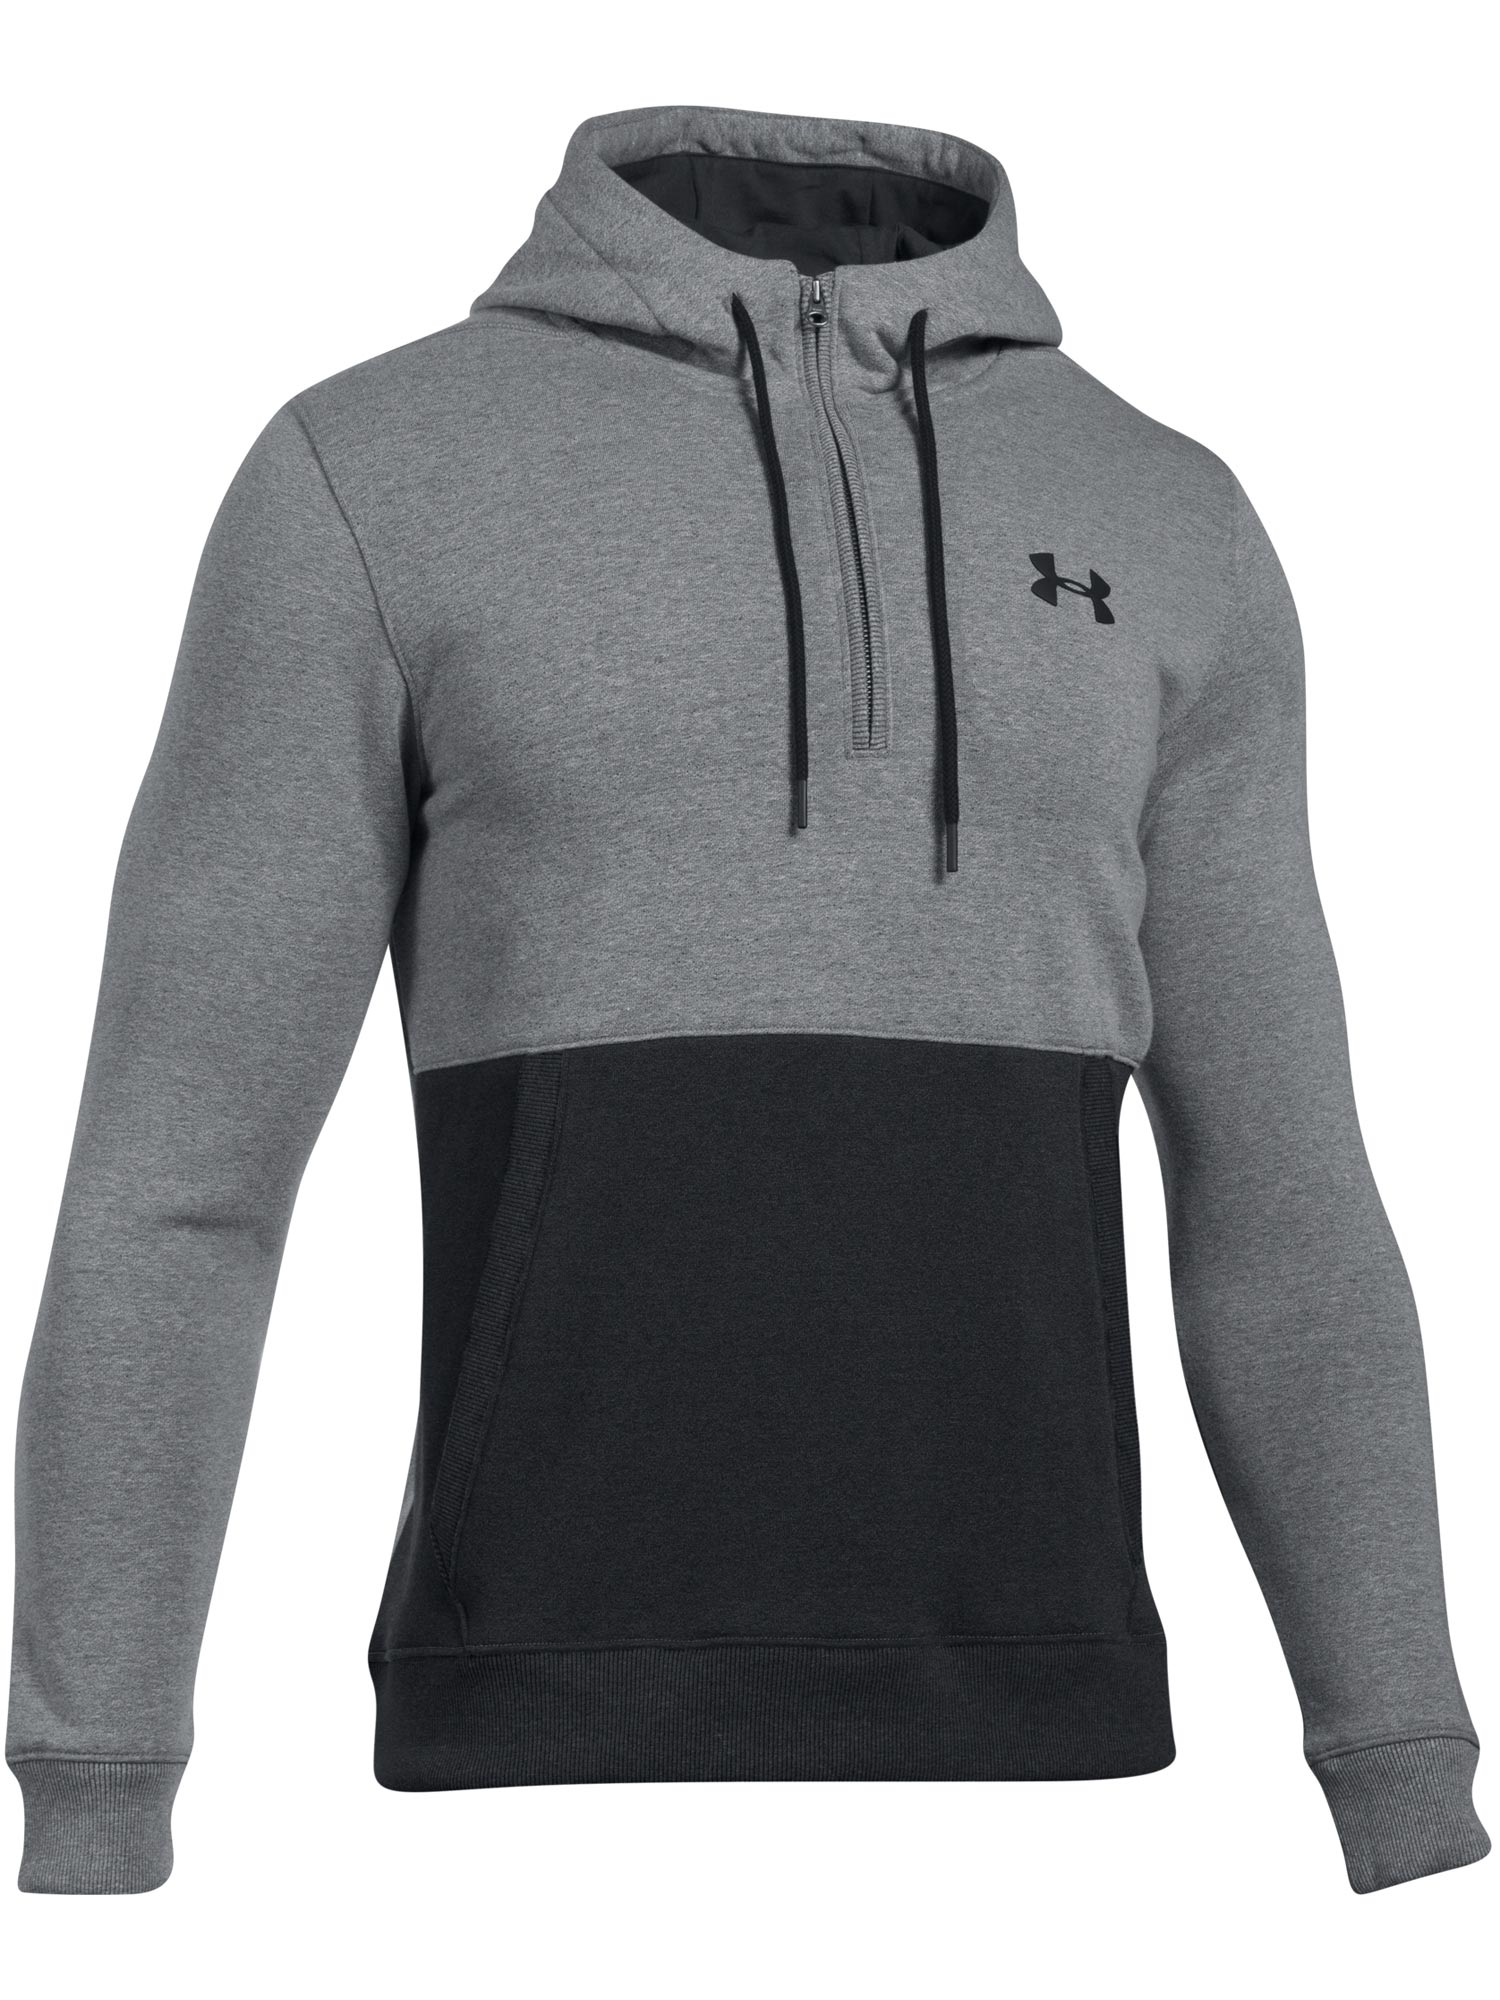 קפוצ'ון אנדר ארמור  1299135-025  Under Armour Threadborne Fleece ½ Zip